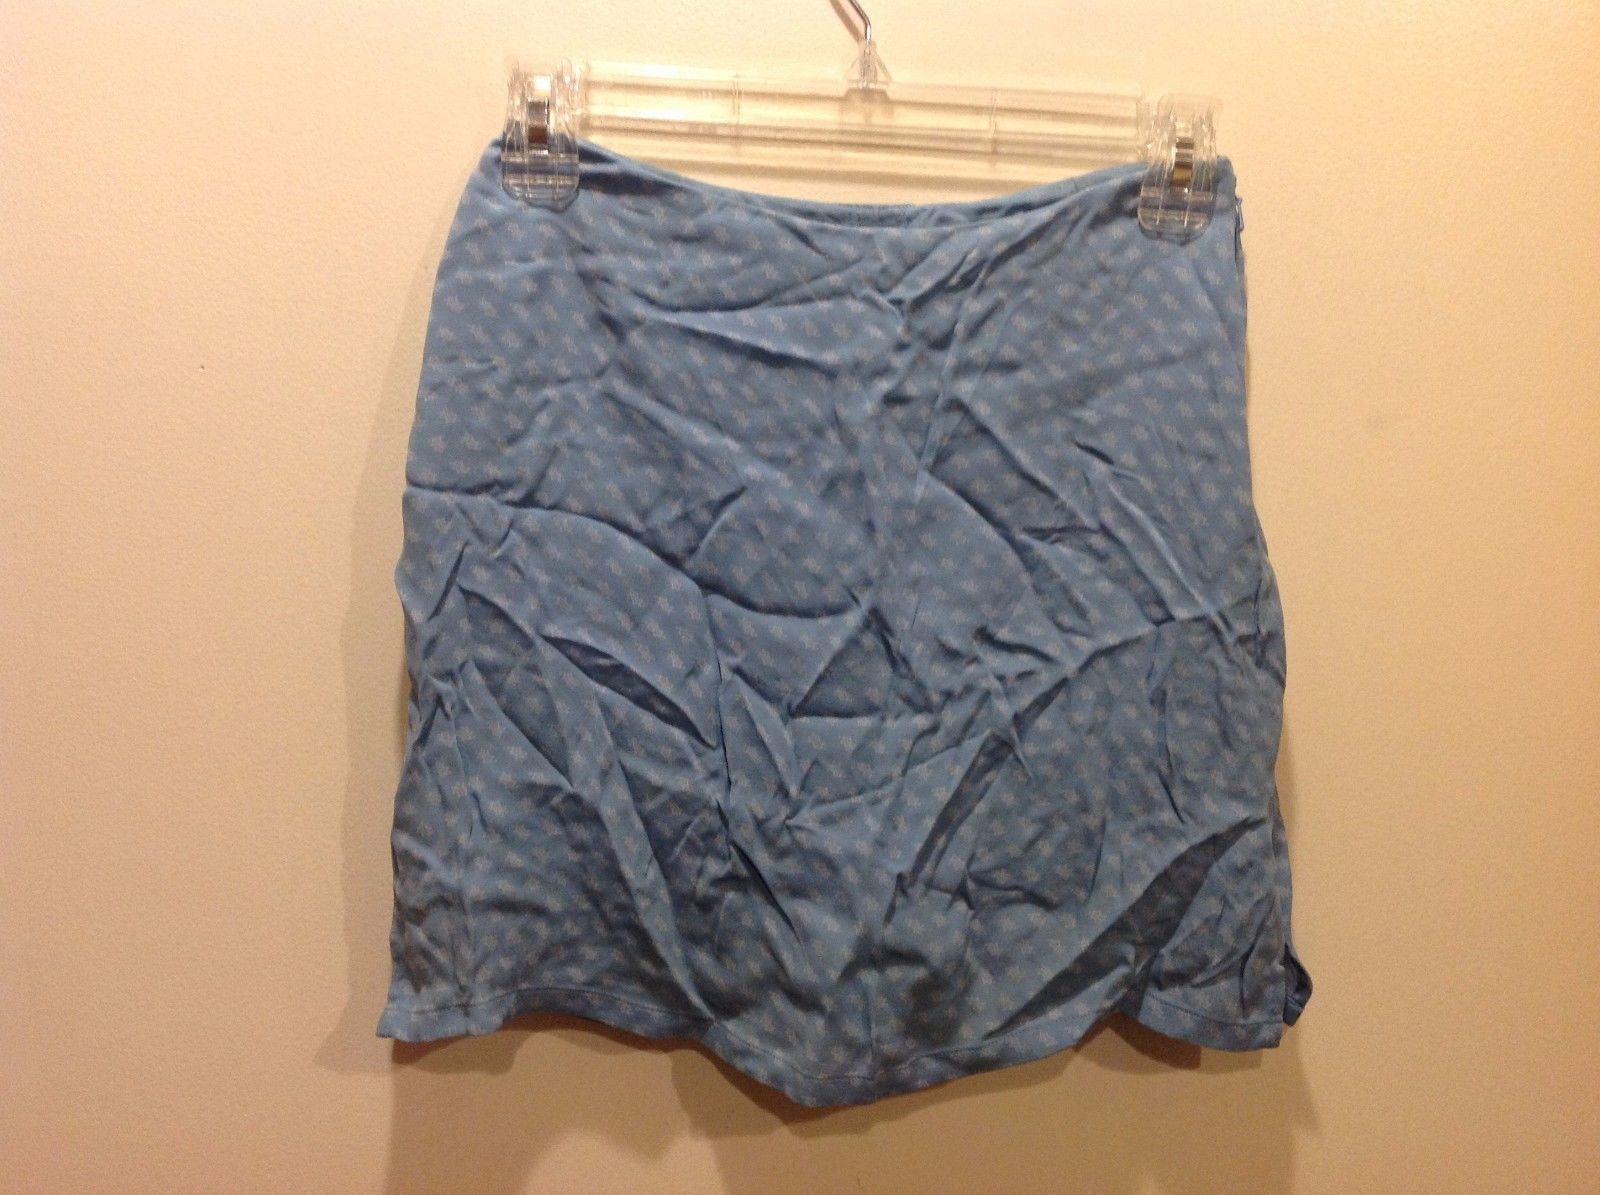 Banana Republic Light Blue Floral Patterned Skort Sz 0